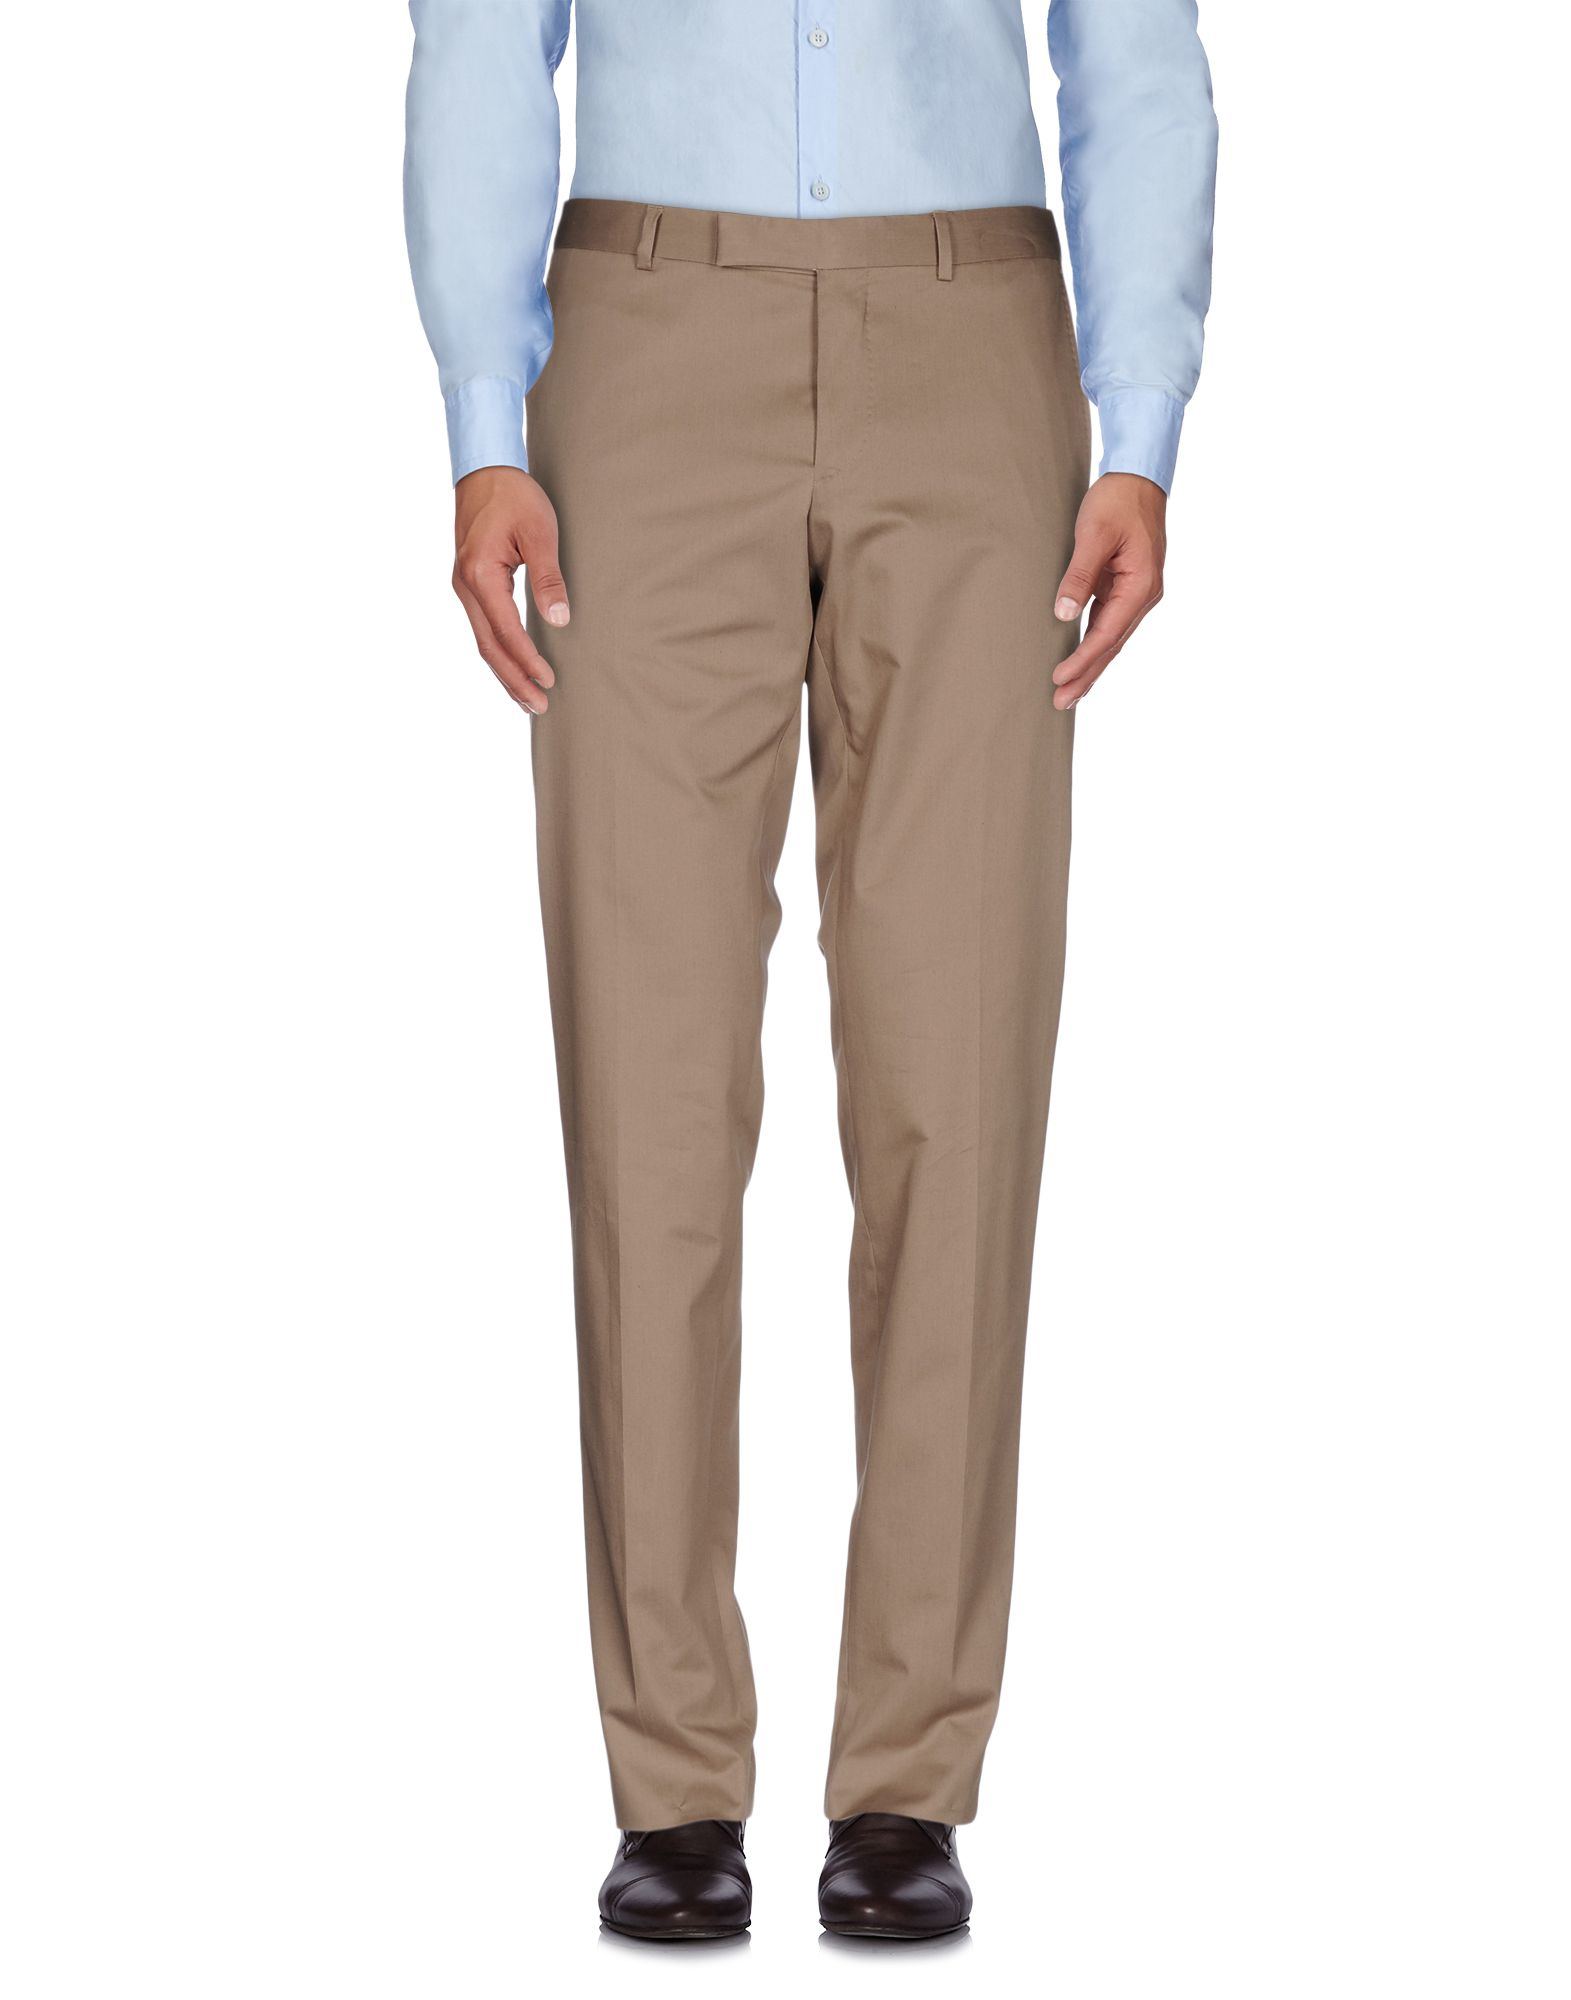 Also, delight in the lightly textured feel of twill pants. Picks from collections including Bar III offer tantalizing ways to build outfits that get noticed during an evening out. Looking good feels effortless, with help from these handsome choices. Men's casual pants are a staple for any season.